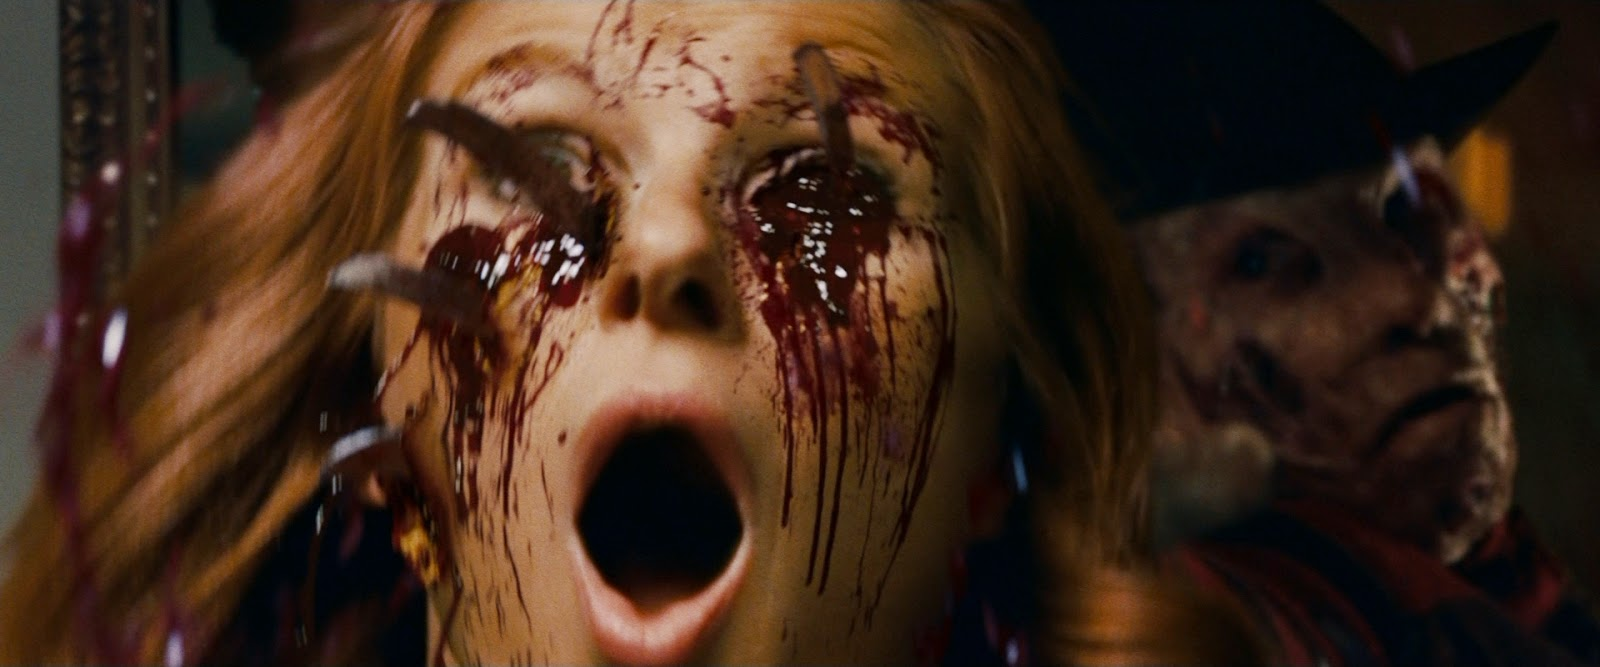 Addicted to Horror Movies